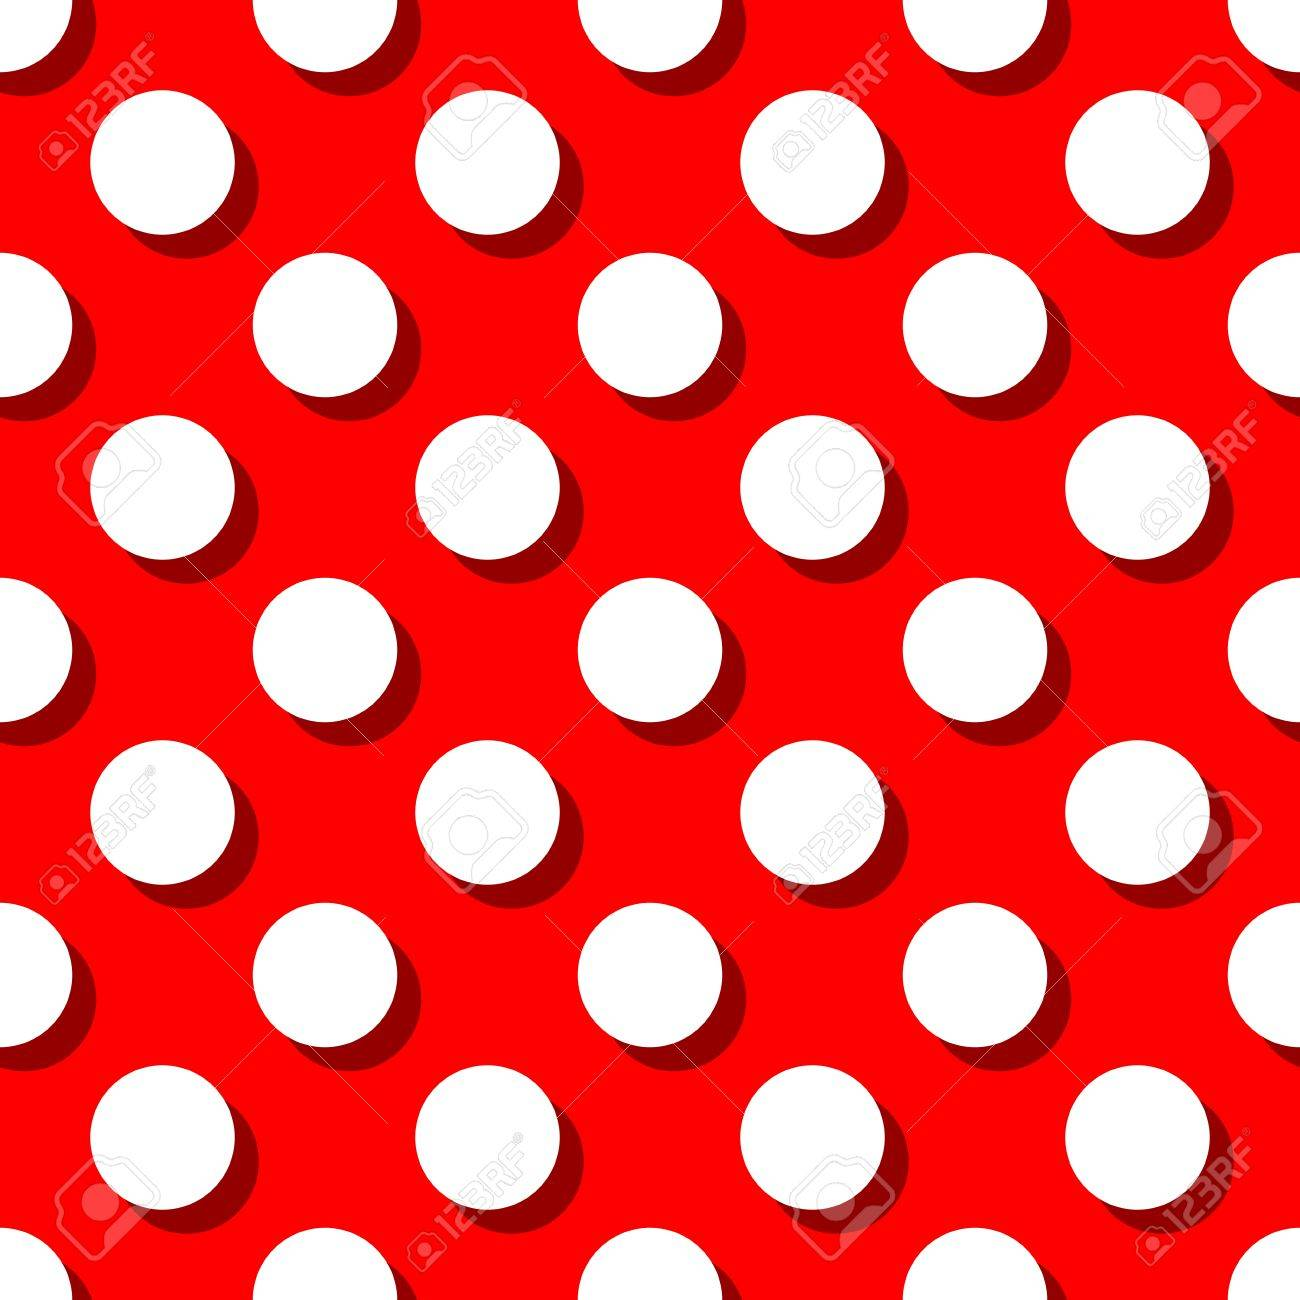 Retro Pattern With Big White Polka Dots On Red Background For Decoration Wallpaper Stock Vector